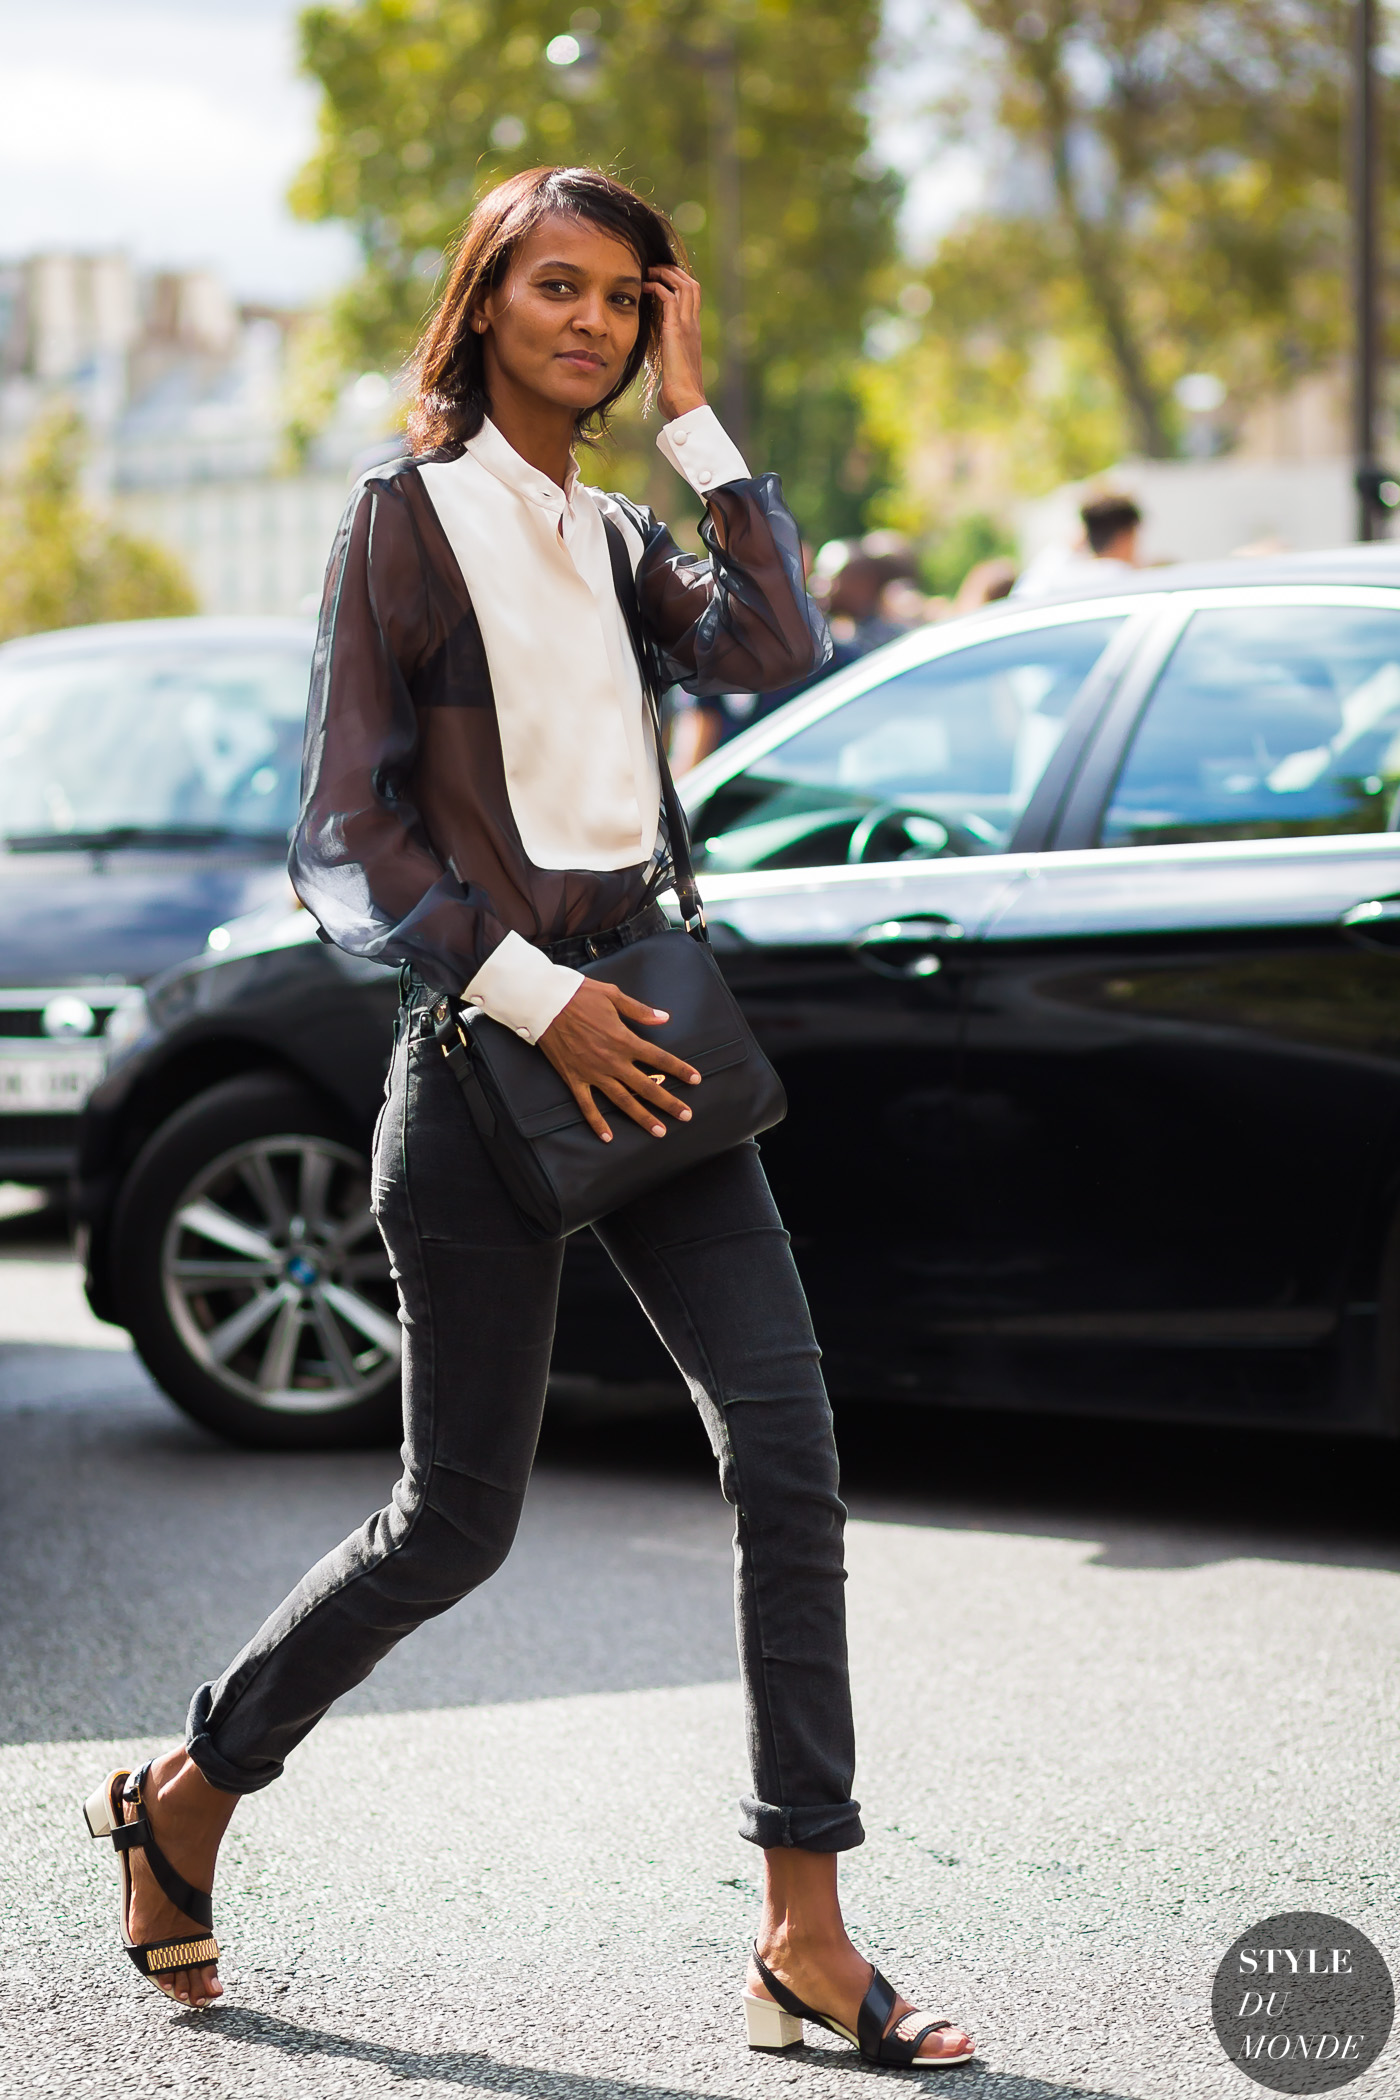 liya-kebede-by-styledumonde-street-style-fashion-photography0e2a5068